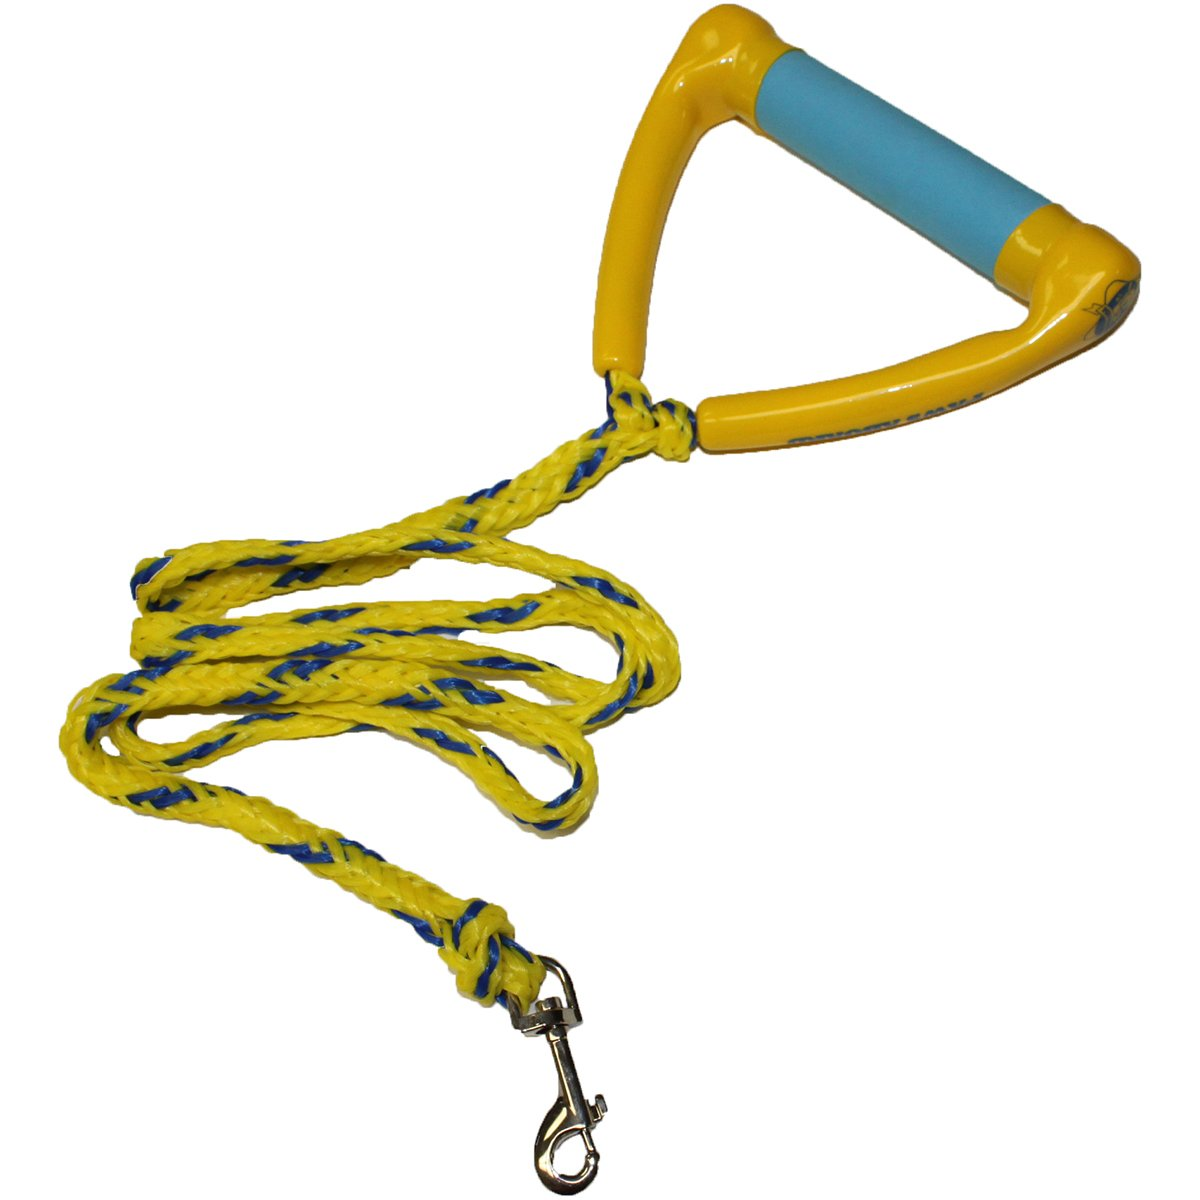 Fido Pet Products Novelty Ski Rope, 4.5 ft